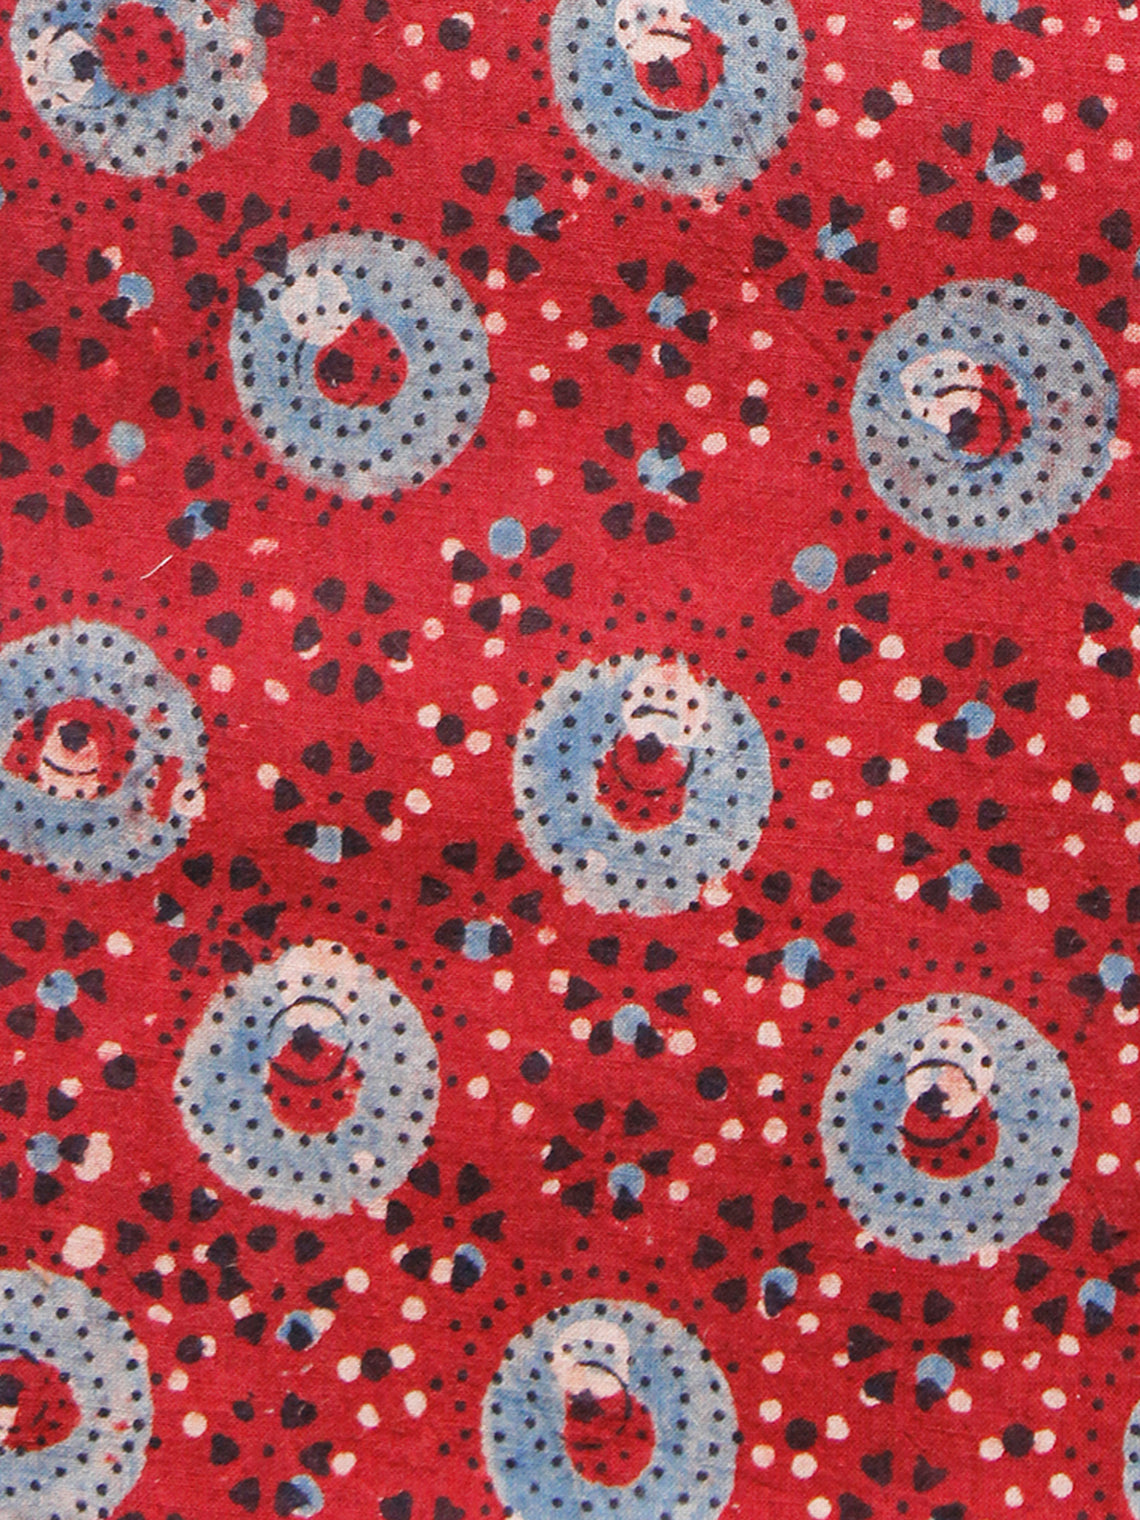 Red Indigo Black Ajrakh Hand Block Printed Cotton Fabric Per Meter - F003F1528